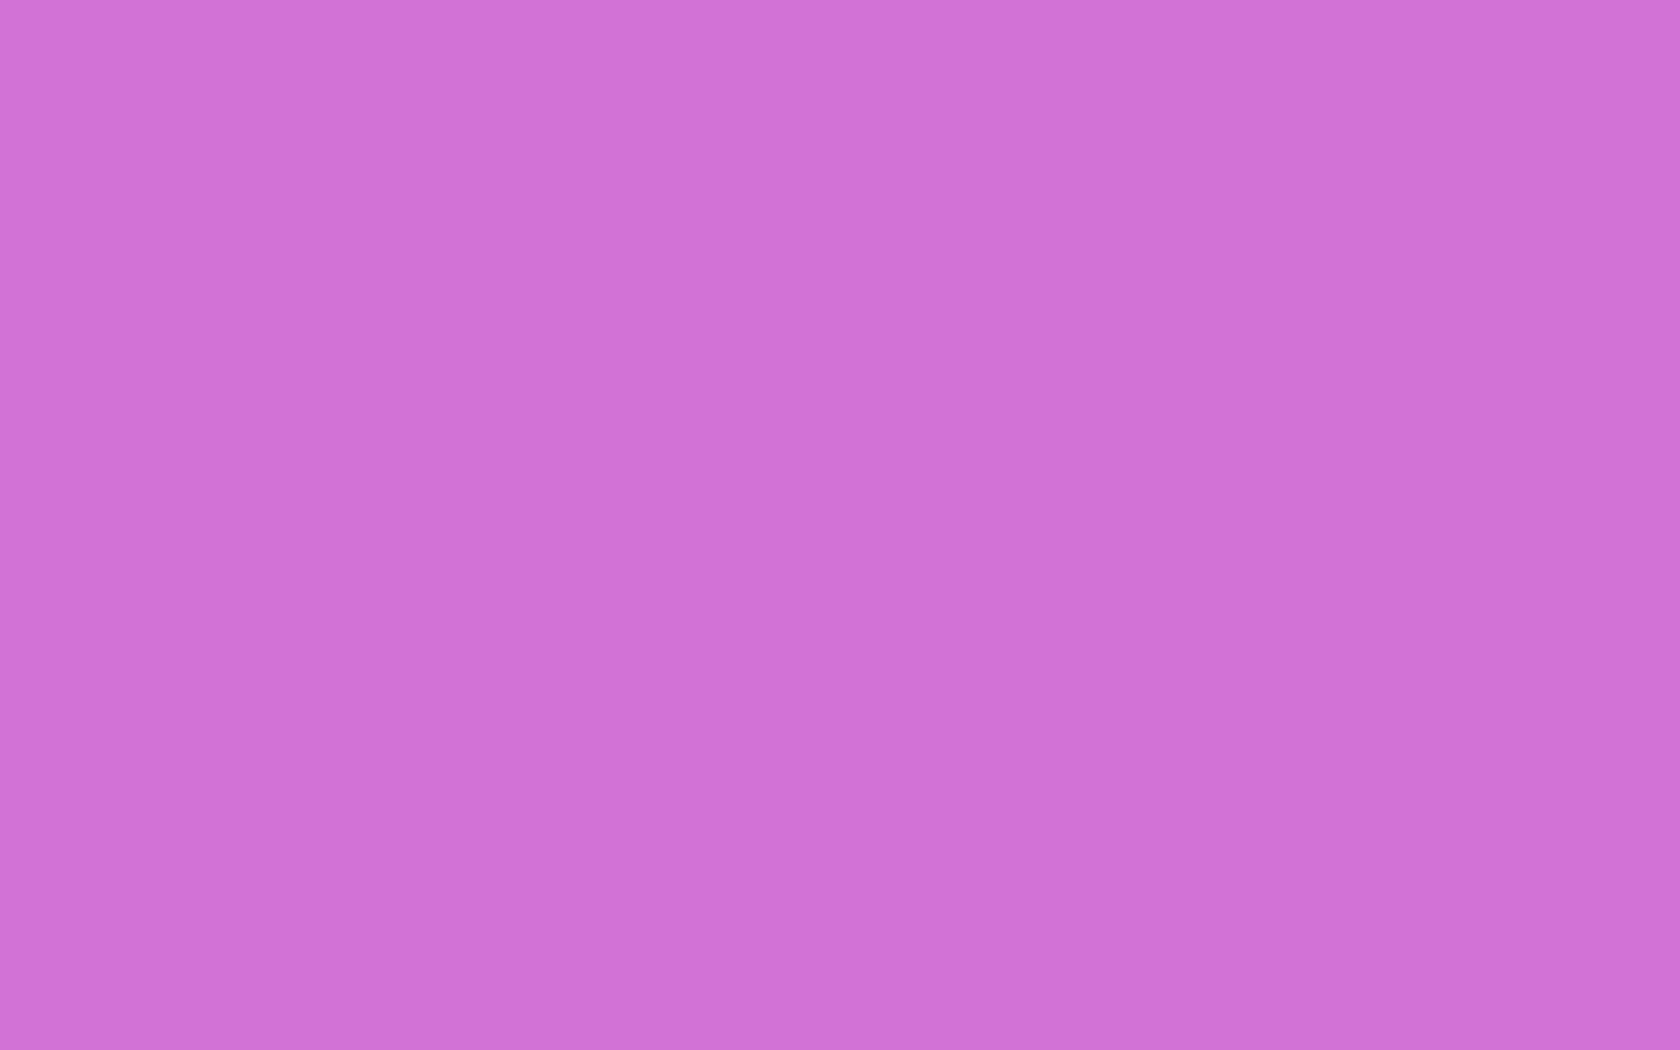 1680x1050 Deep Mauve Solid Color Background